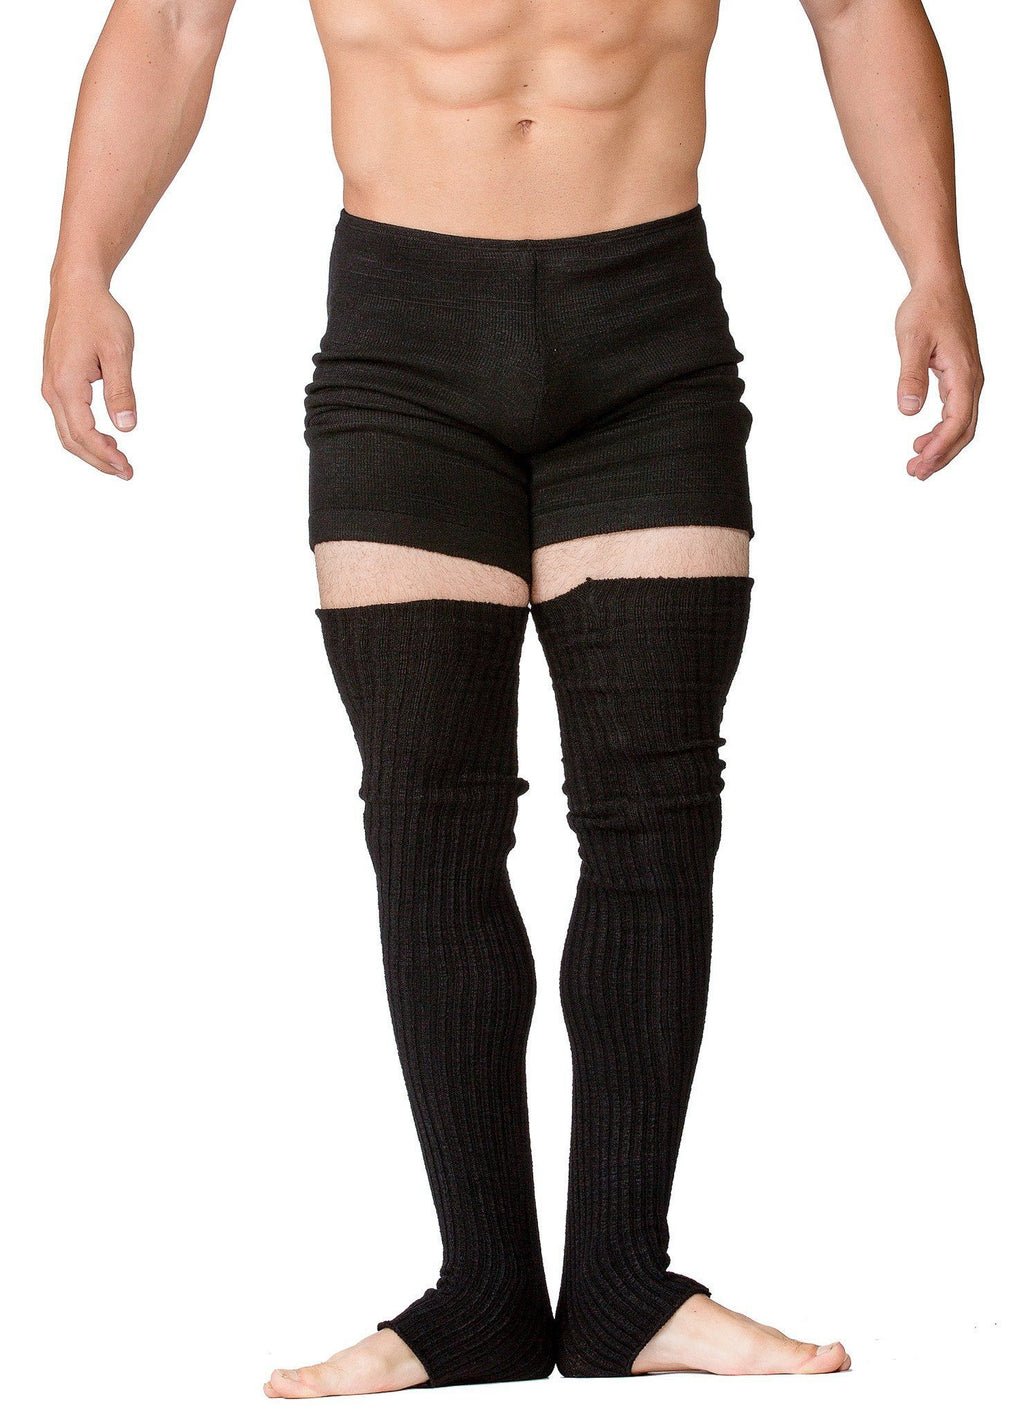 Male Dancewear Shorts & Men's Thigh High Leg Warmers by KD dance New York Made In USA